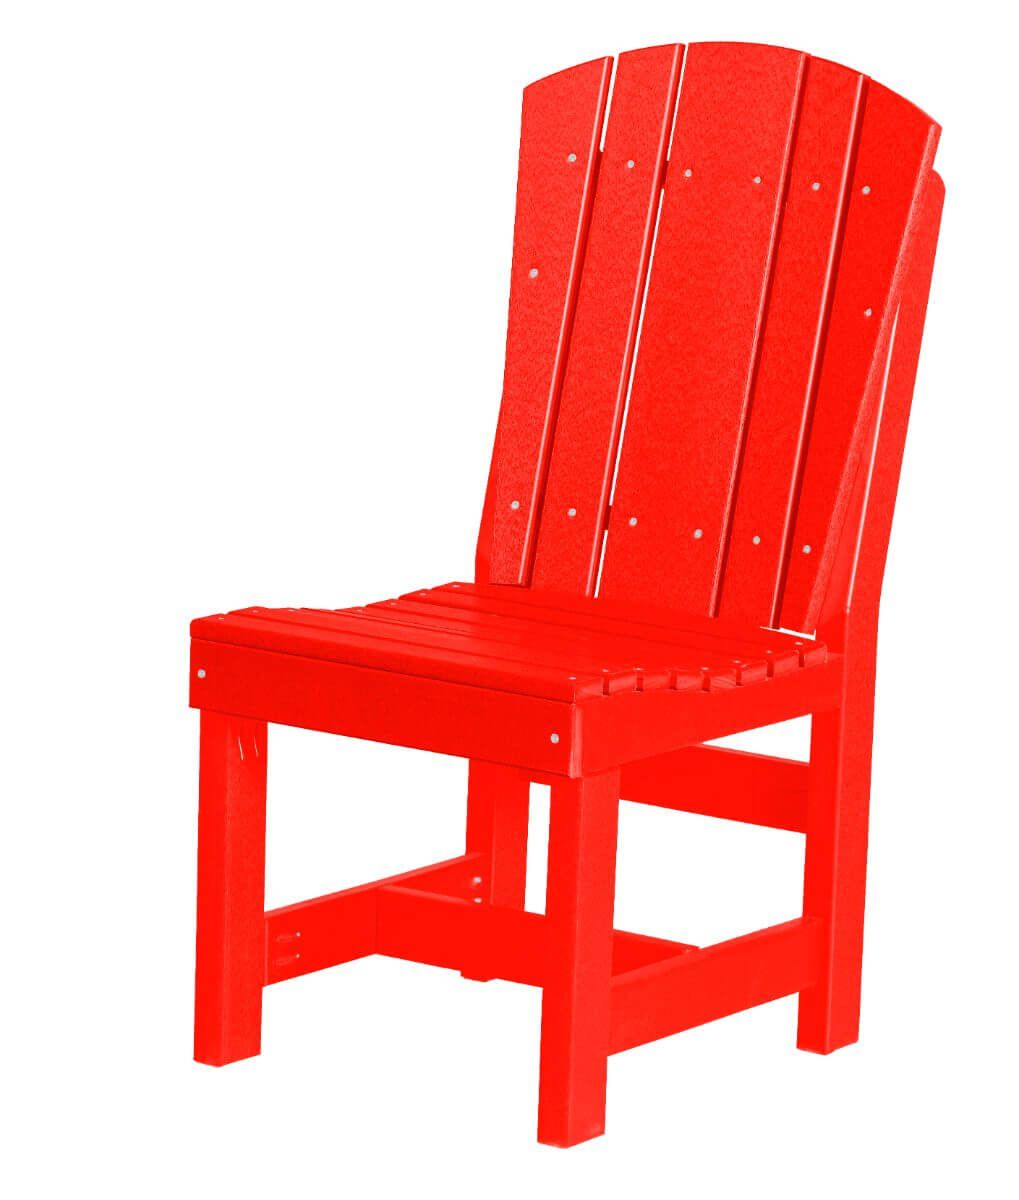 Bright Red Oristano Outdoor Dining Chair